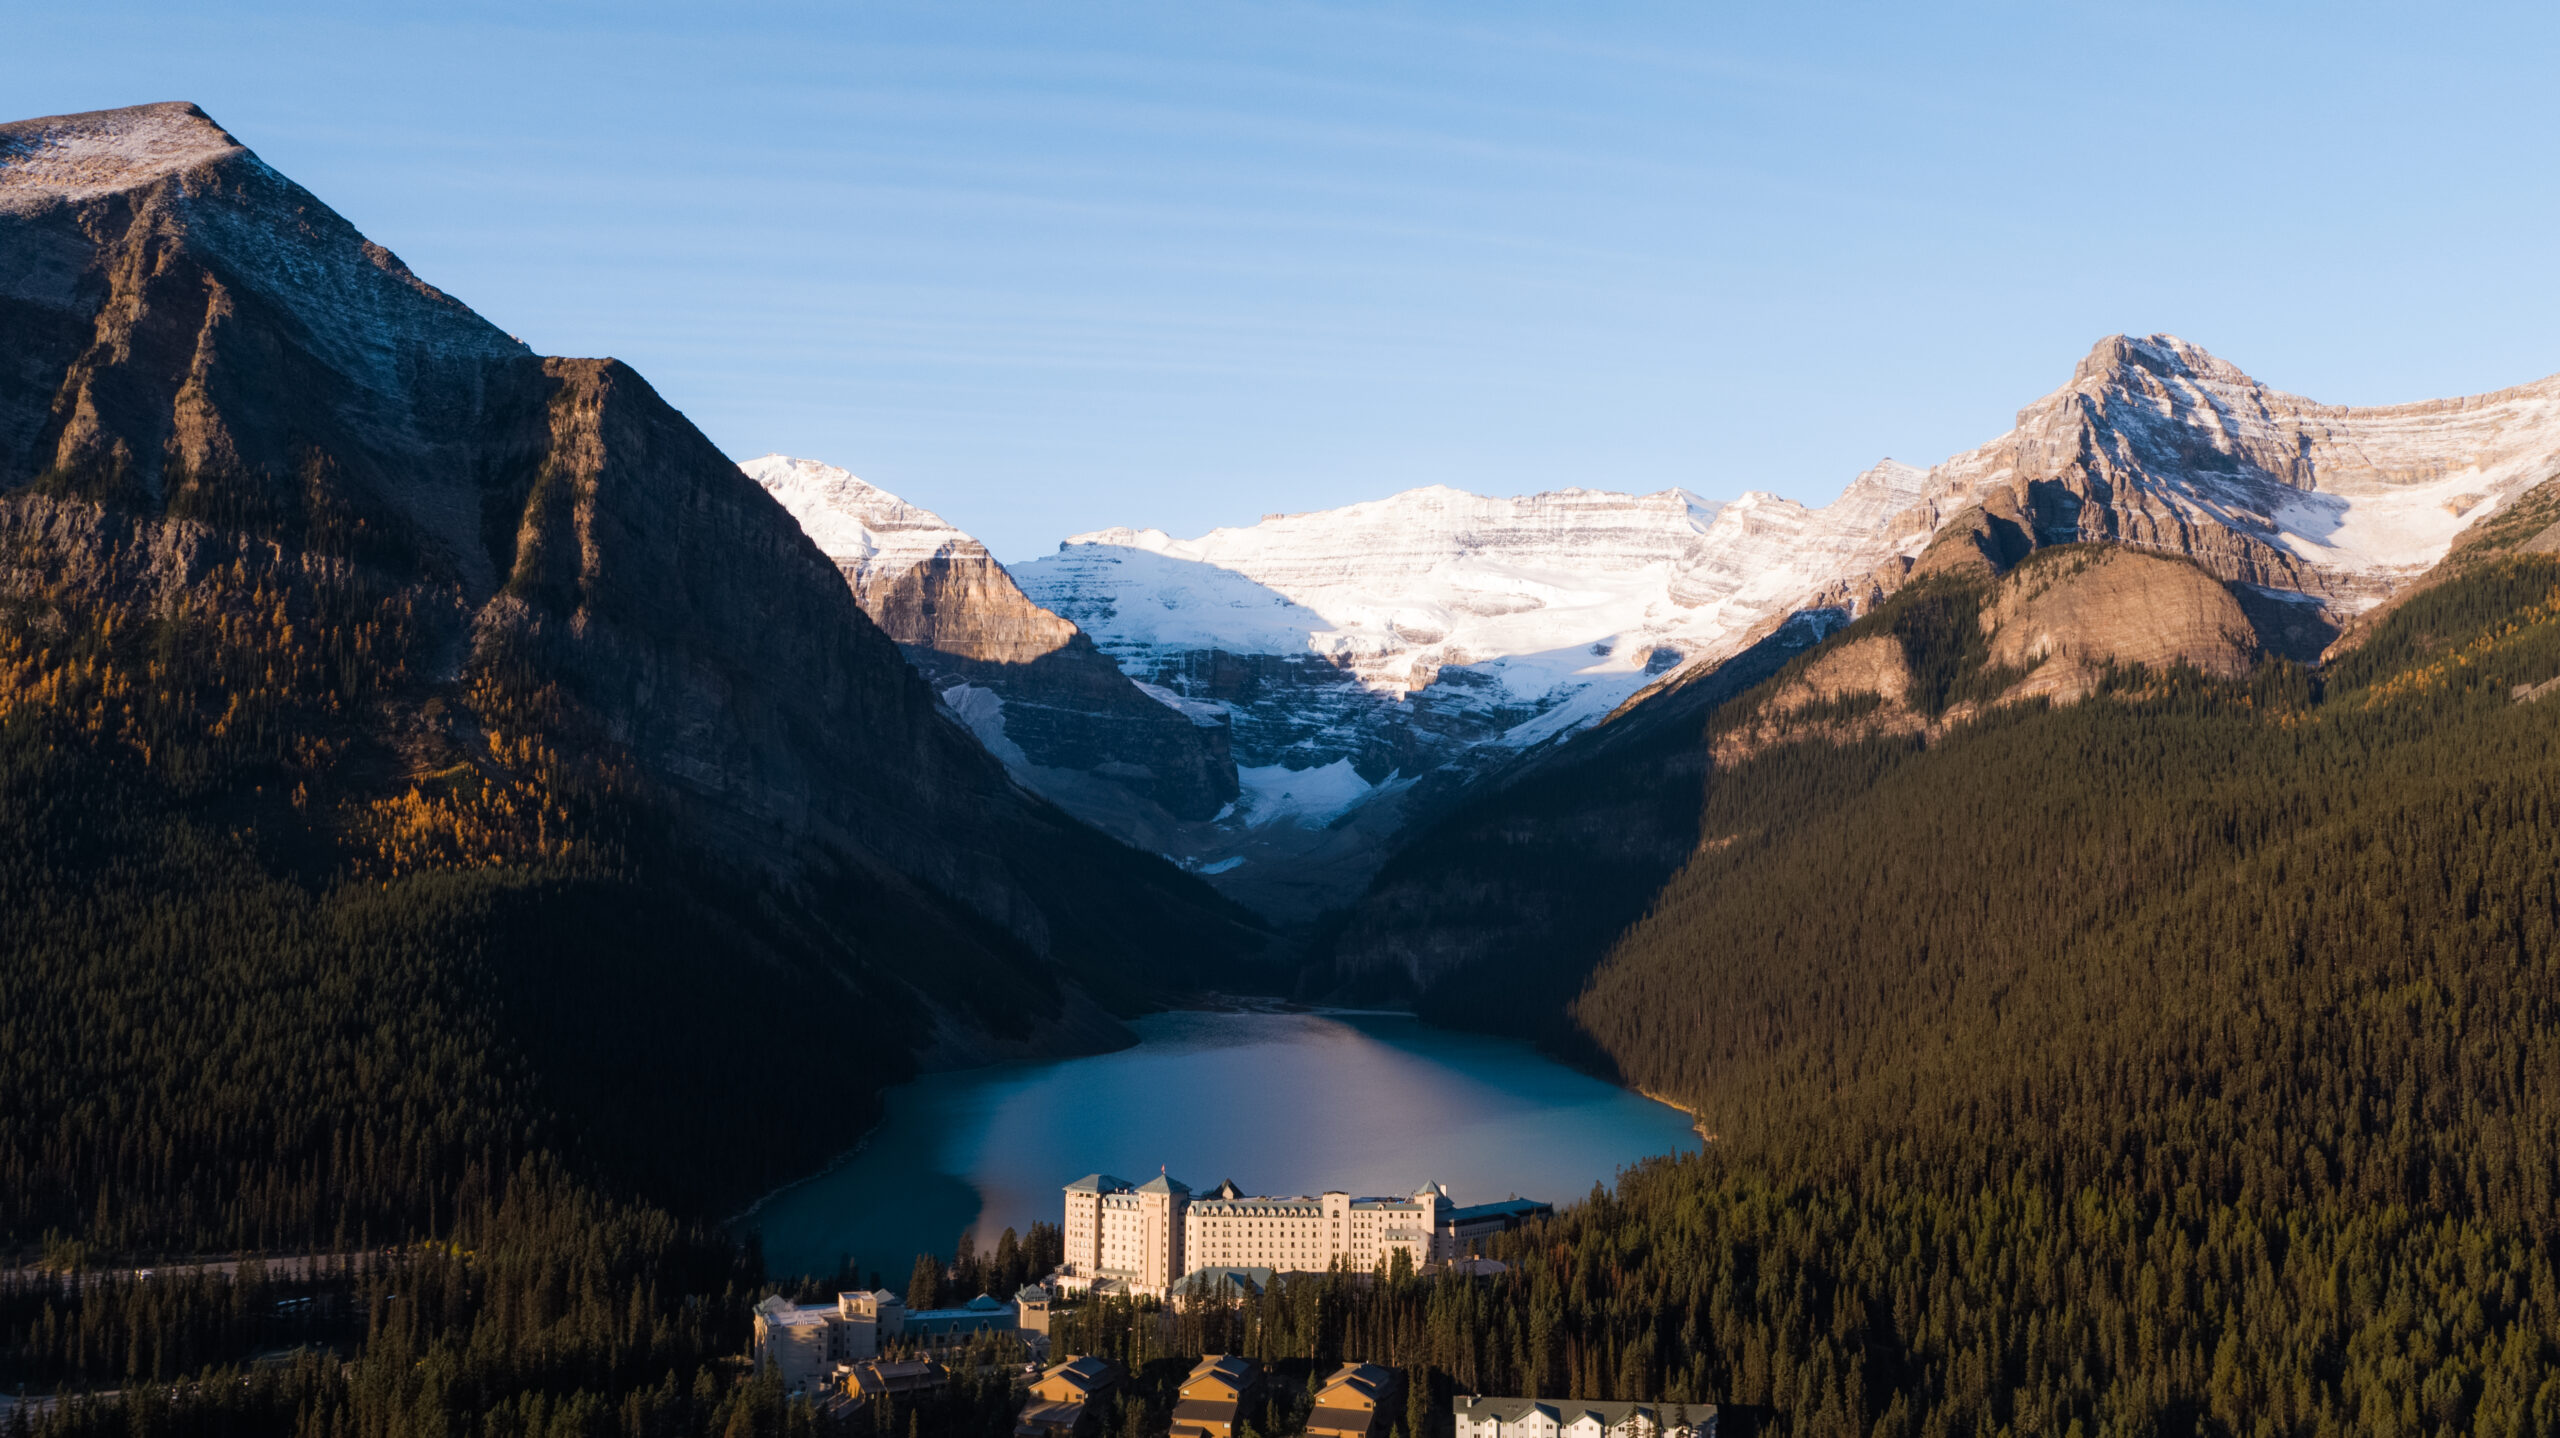 """""""TOP 30 UNDER 30"""" AWARDS 3 LEADERS AT FAIRMONT HOTELS IN CANADA'S WESTERN MOUNTAIN REGION"""